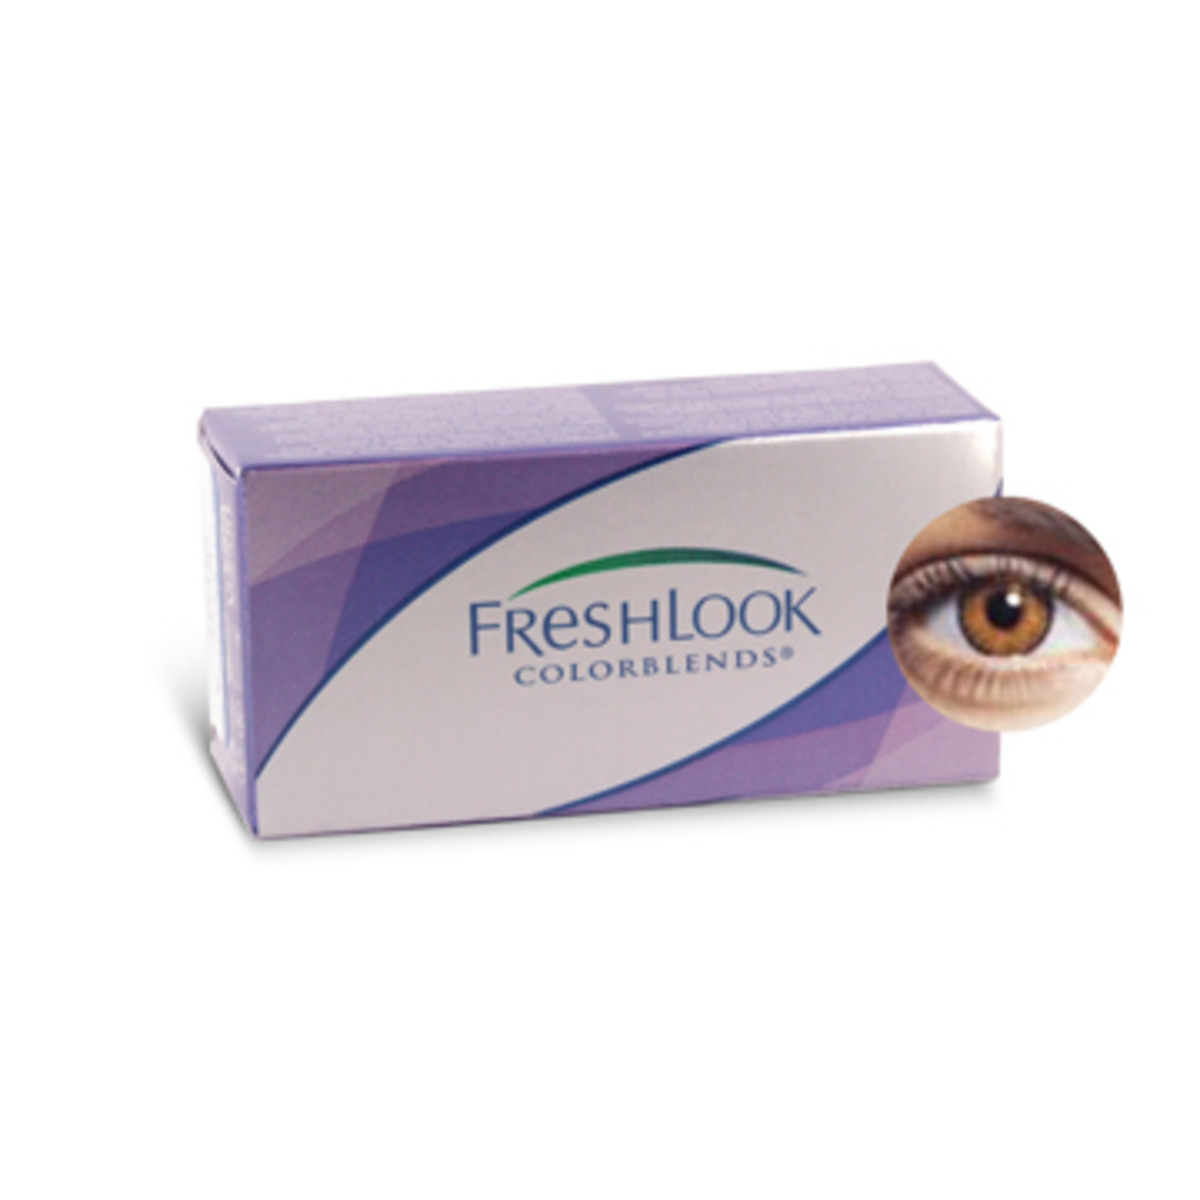 Freshlook Colorblends Honey (Ambre)